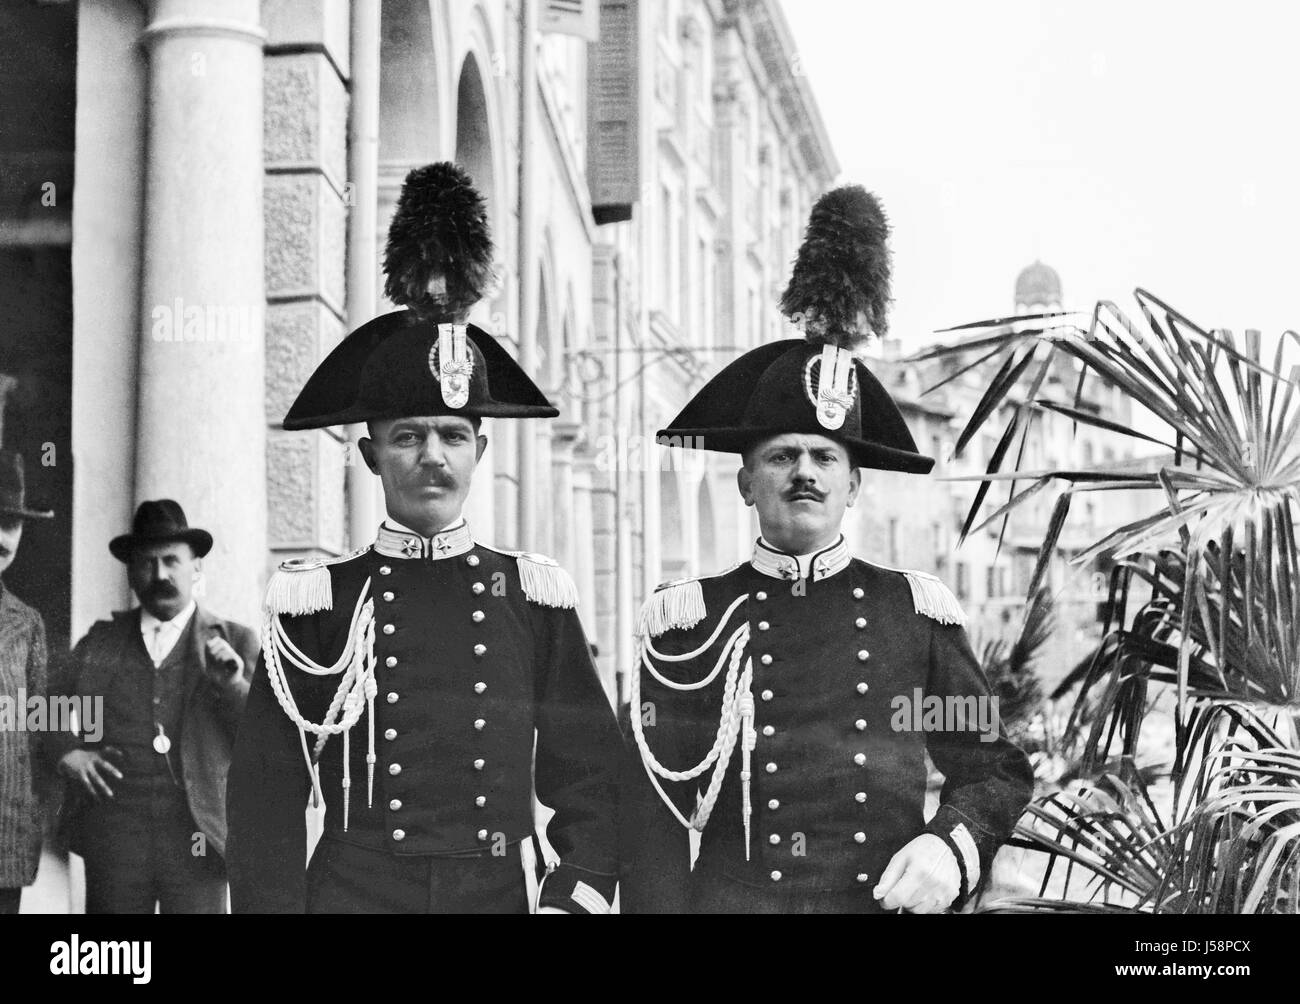 Two Italian Carabinieri in full dress uniform pose for the camera on a city street. in 1900. Restored from a high - Stock Image